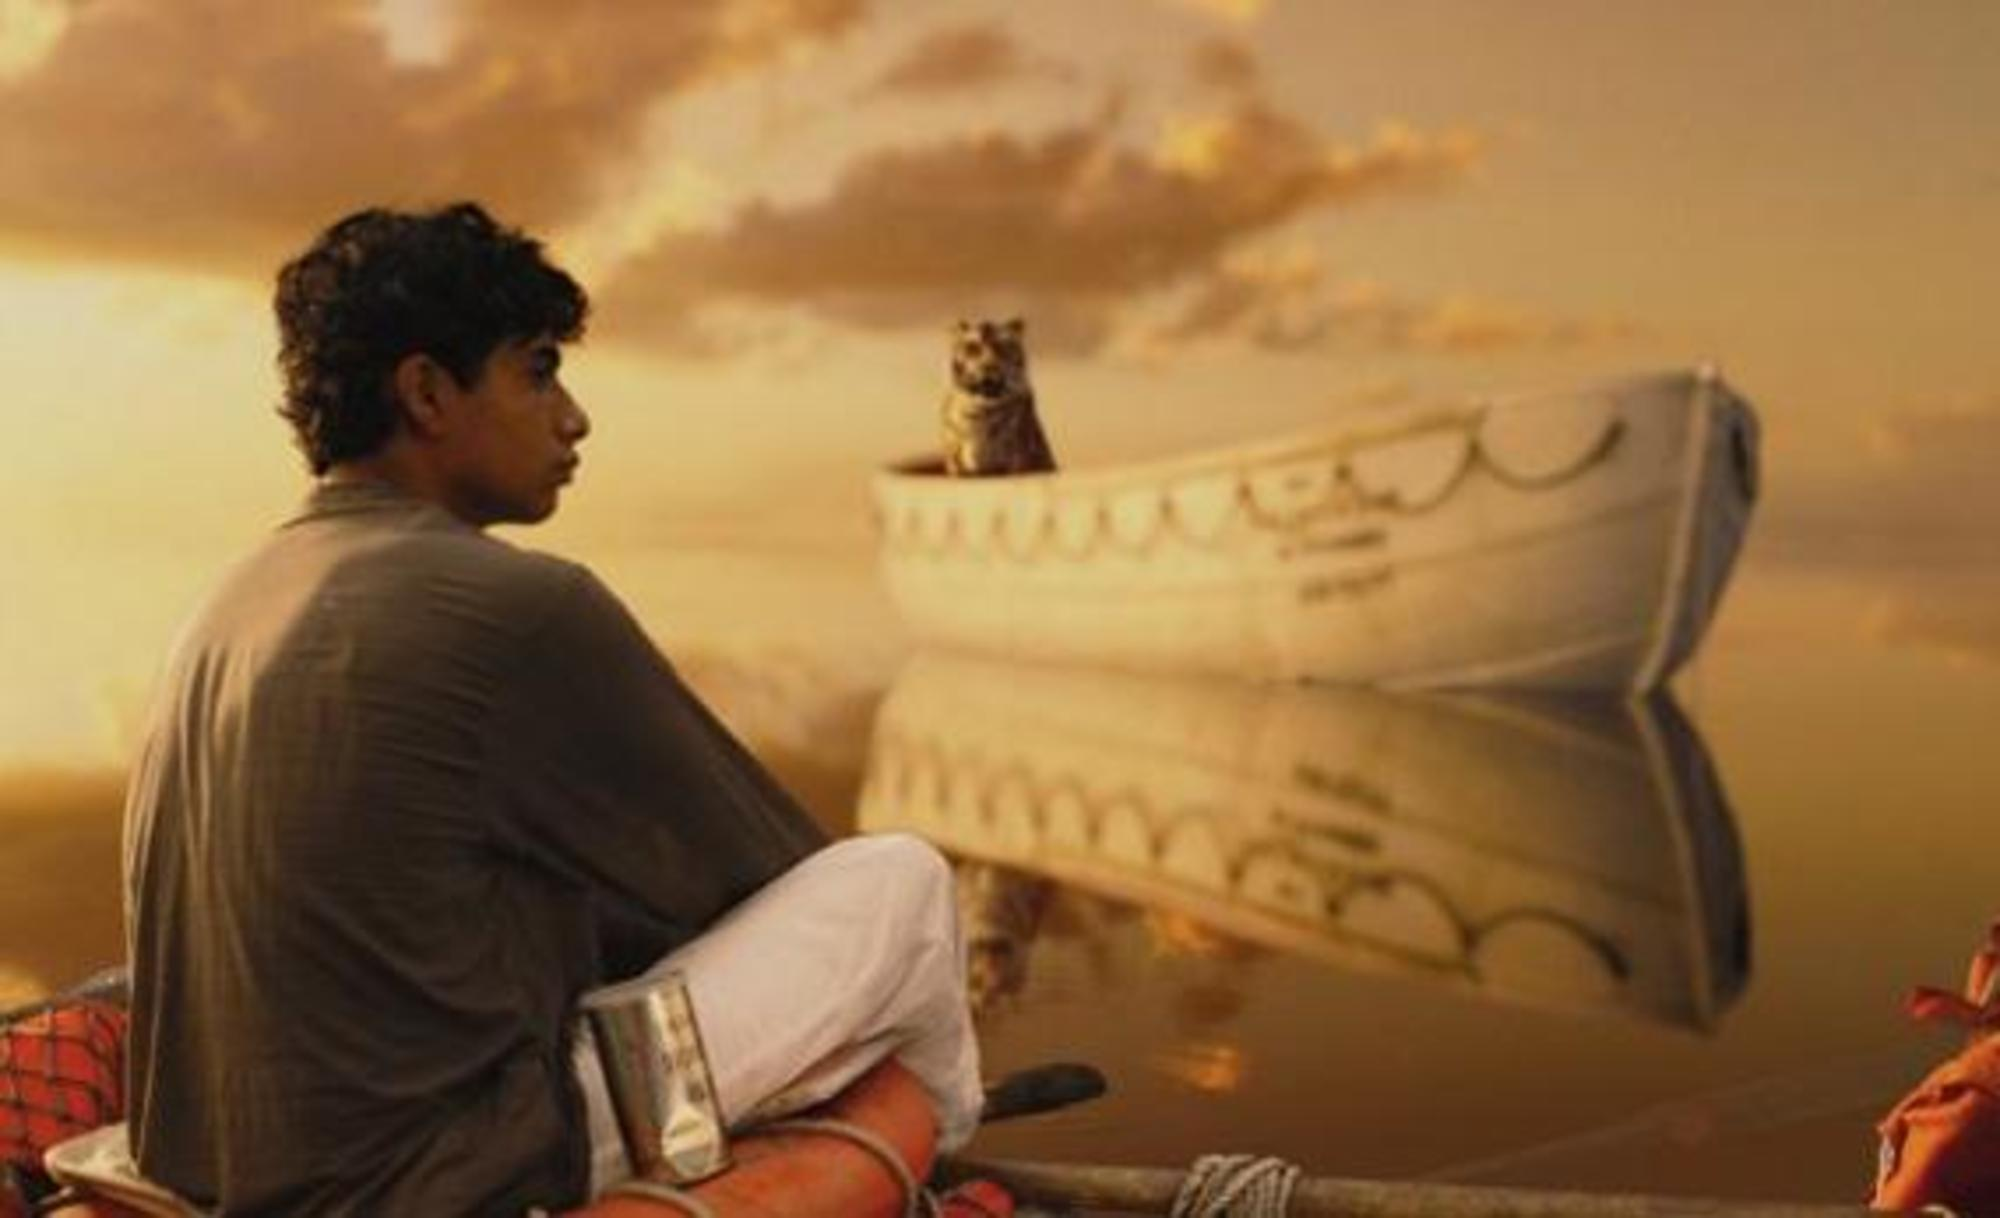 the life of pi Life of pi is a novel by yann martel life of pi study guide contains a biography of author yann martel, literature essays, quiz questions, major themes, characters.